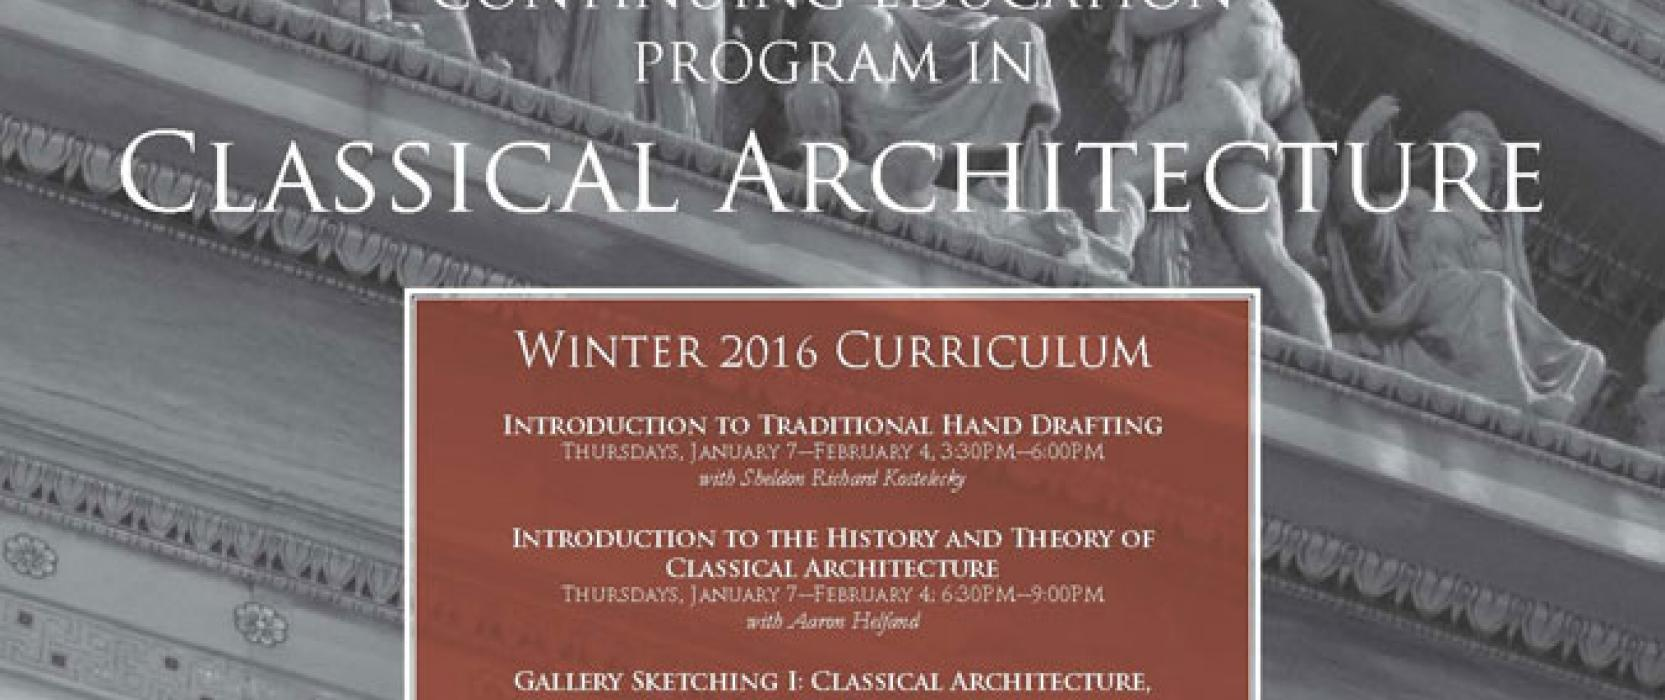 ICAA Continuing Education Program in Classical Architecture